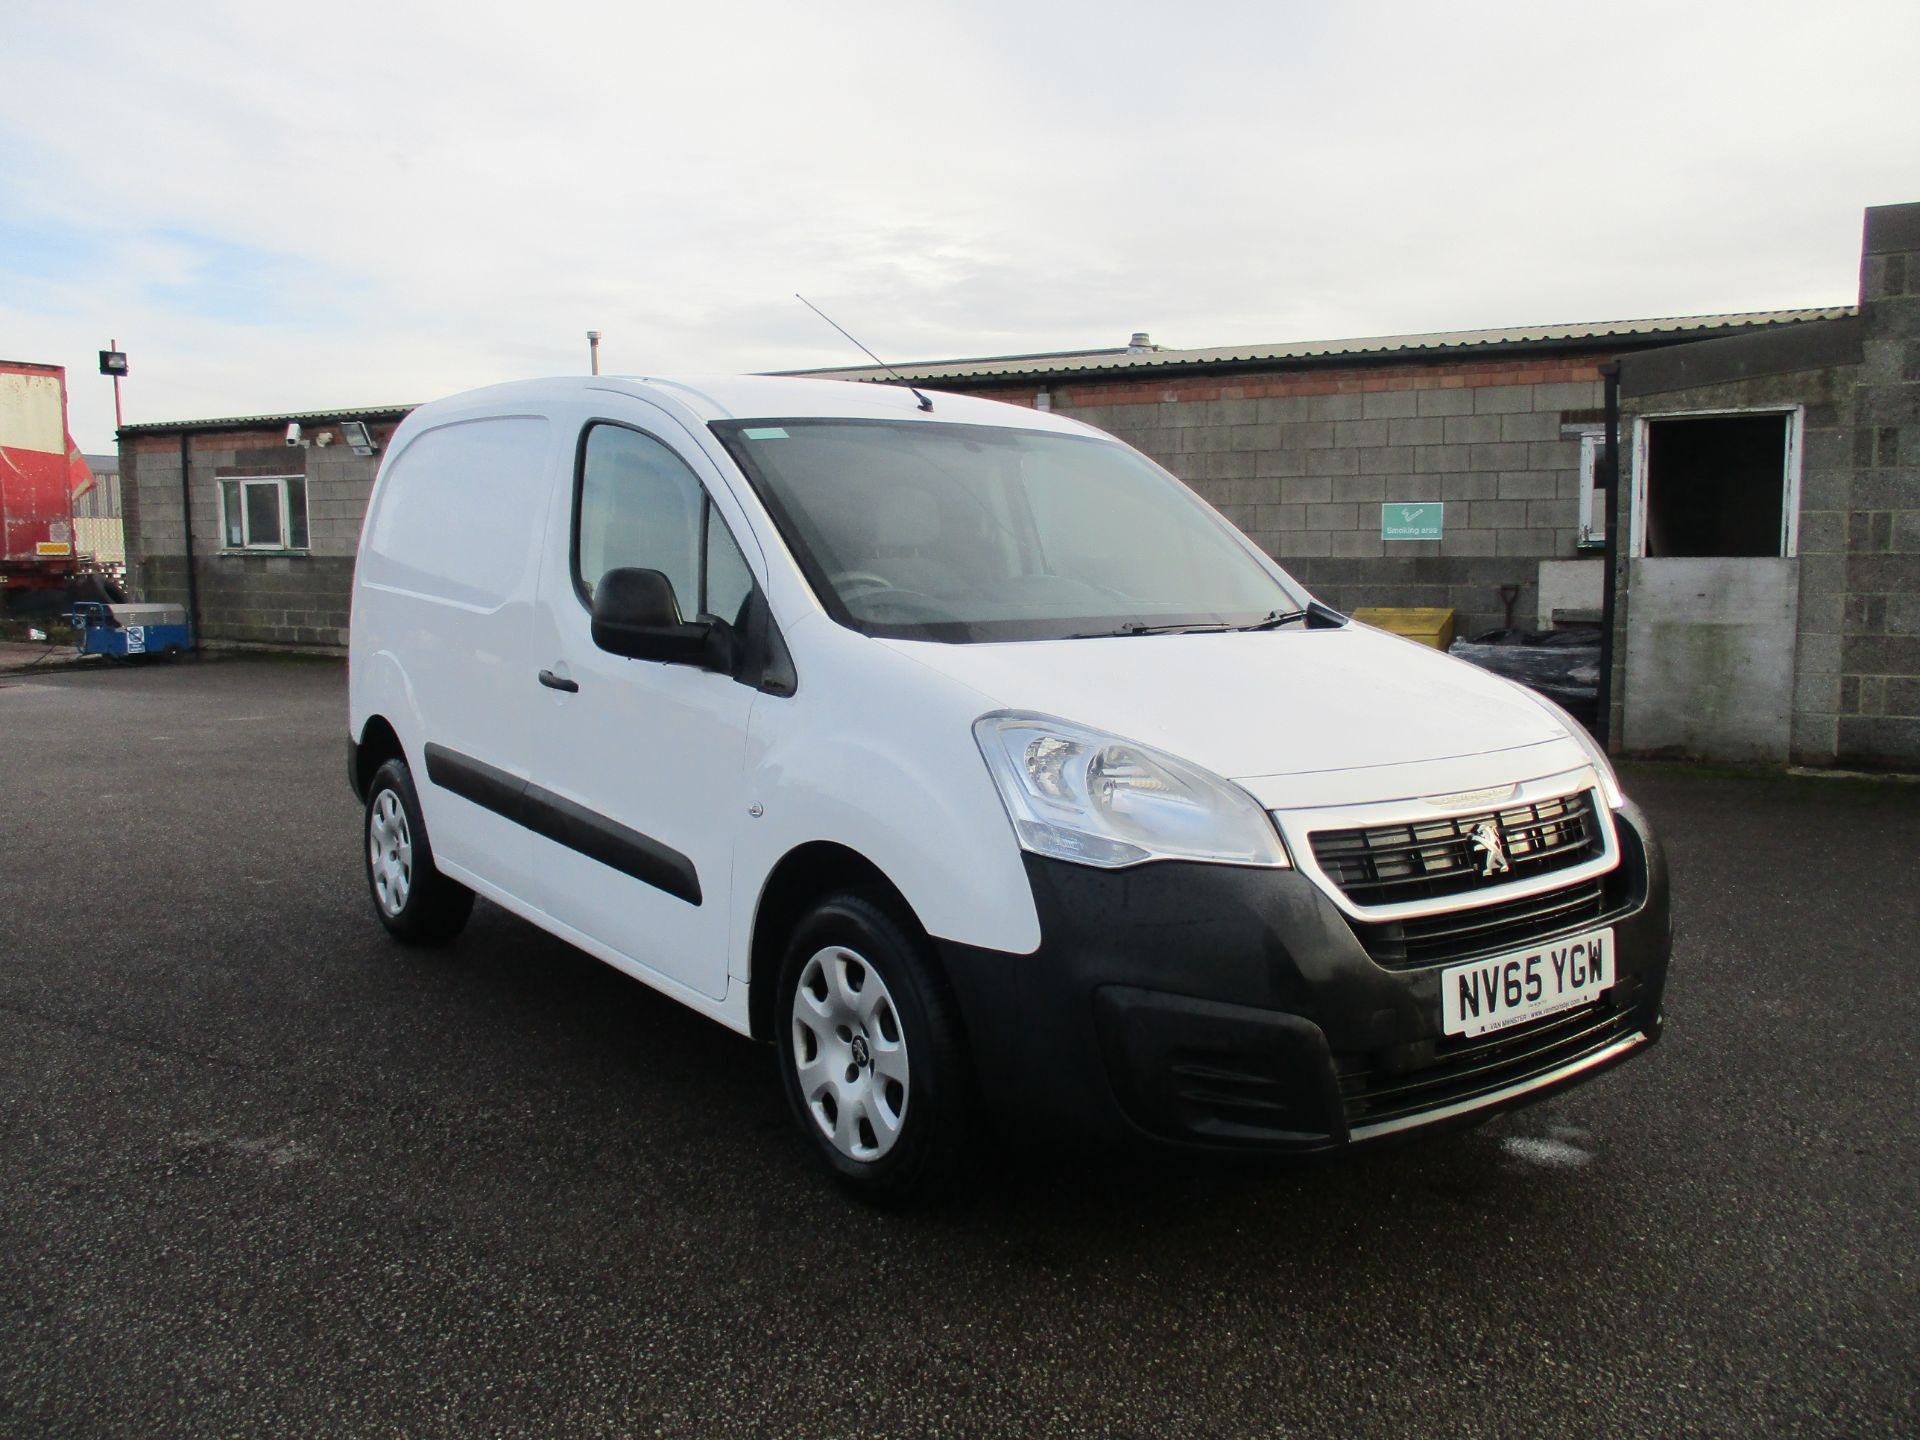 2016 Peugeot Partner L1 850 S 1.6 92PS (SLD) EURO 5 (NV65YGW)